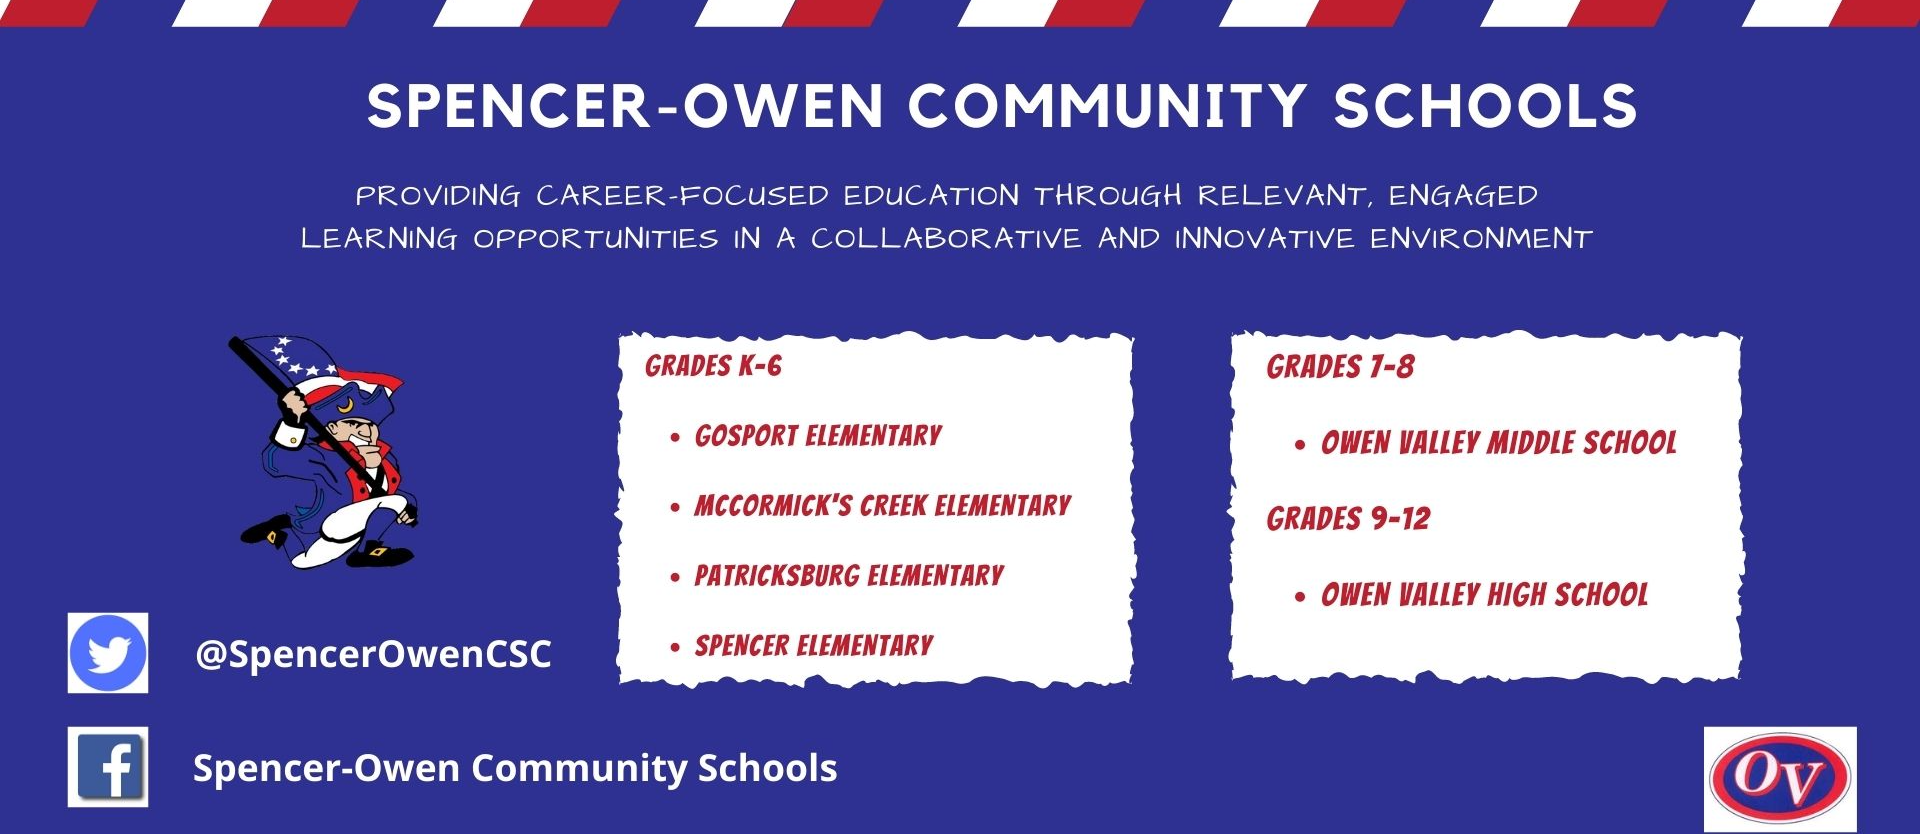 Spencer-Owen Community Schools is located in Spencer, Indiana.